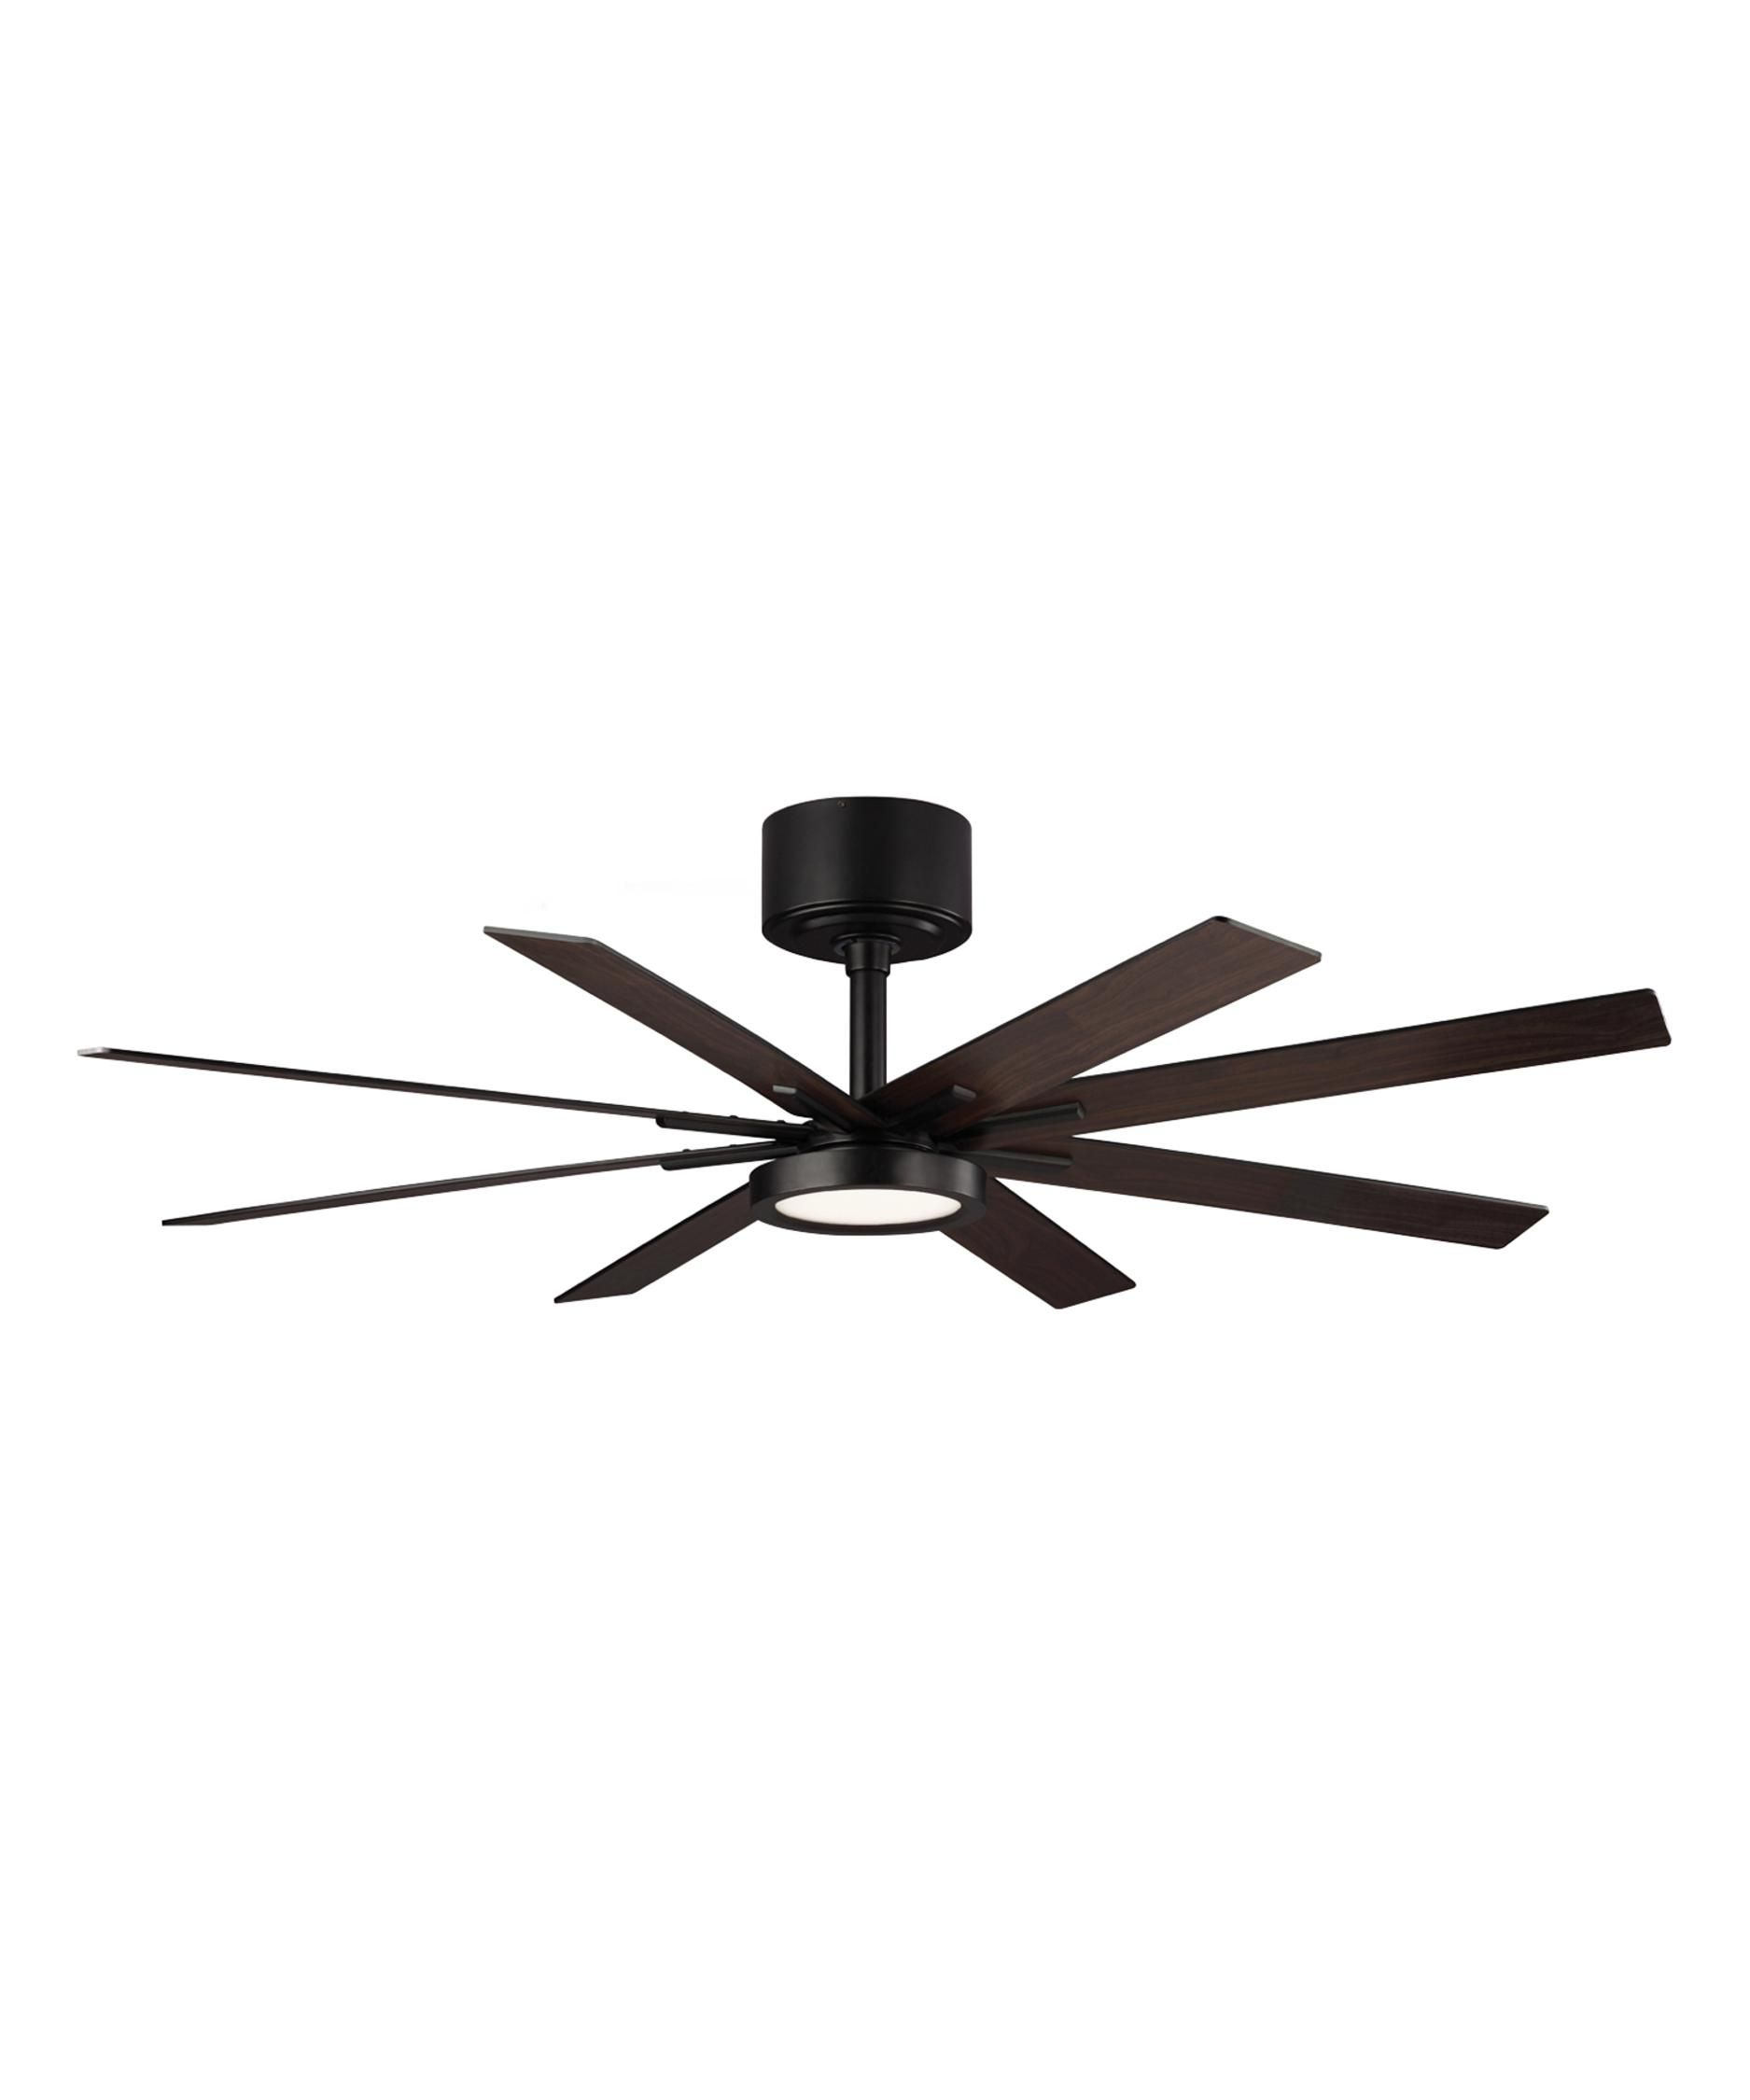 Monte Carlo 8eer60 Empire 60 Inch Ceiling Fan With Light Kit 60 Ceiling Fan Ceiling Fan With Light Fan Light